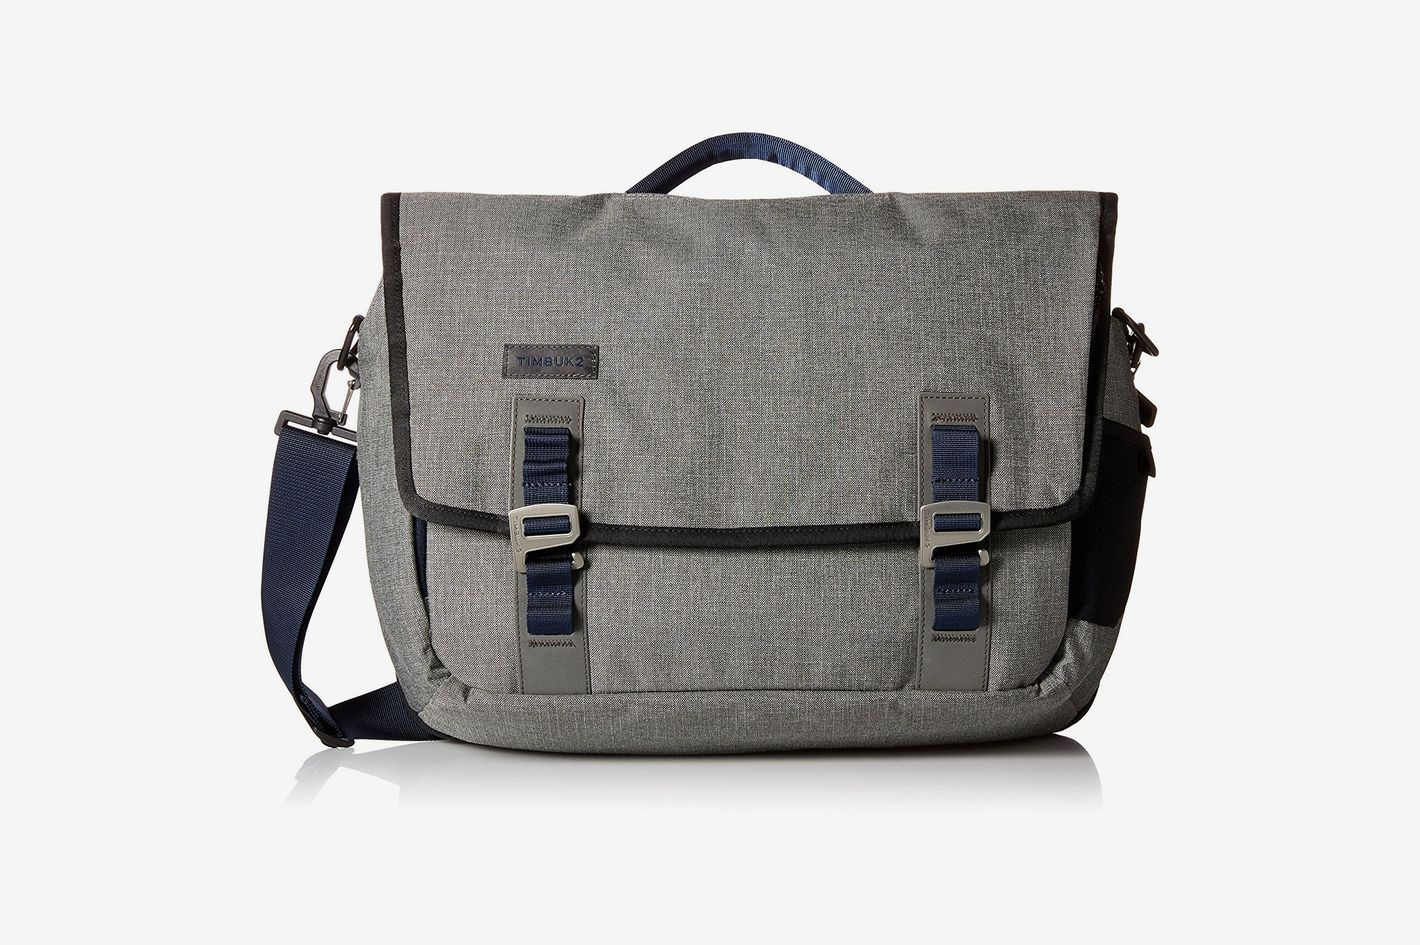 c225d4352d0d Timbuk2 Command Laptop Messenger Bag